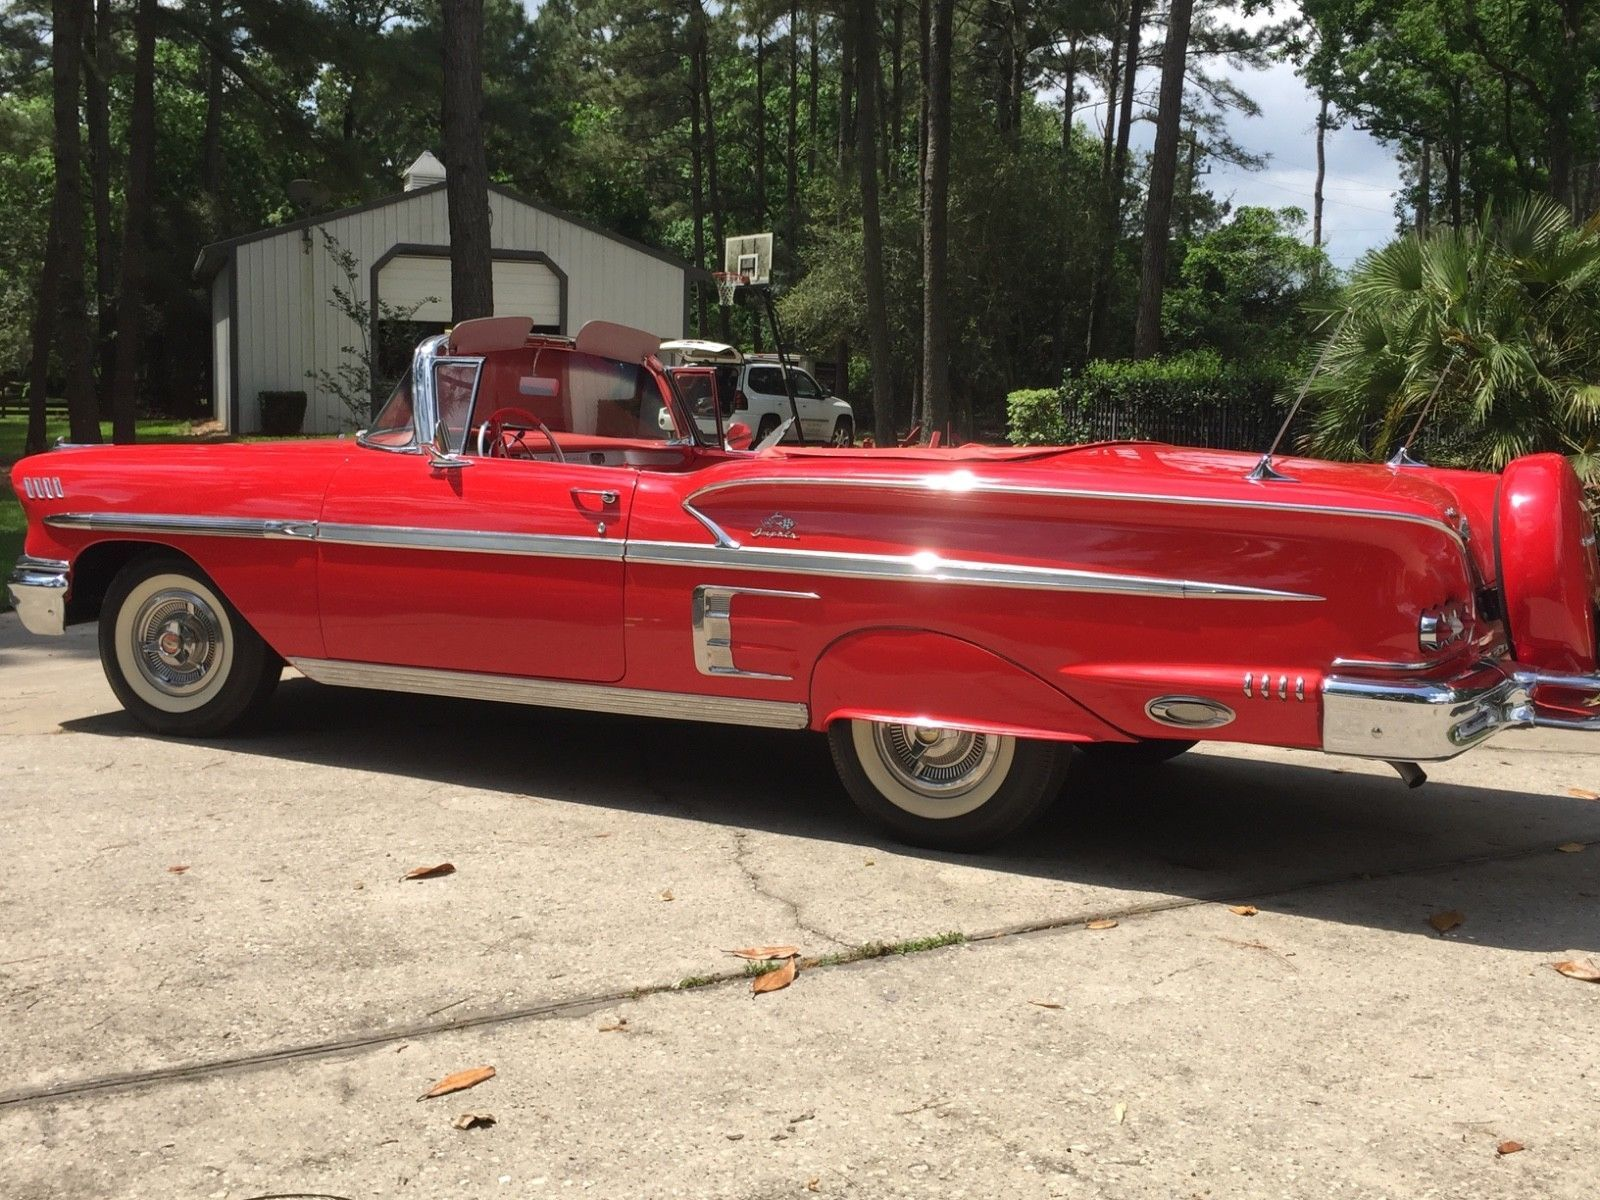 Pin By Ross Gillum On Collectible Cars Pinterest Chevy Impala 1957 Convertible Cool Awesome 1958 Chevrolet 58 With Continental Kit 2018 Check More At